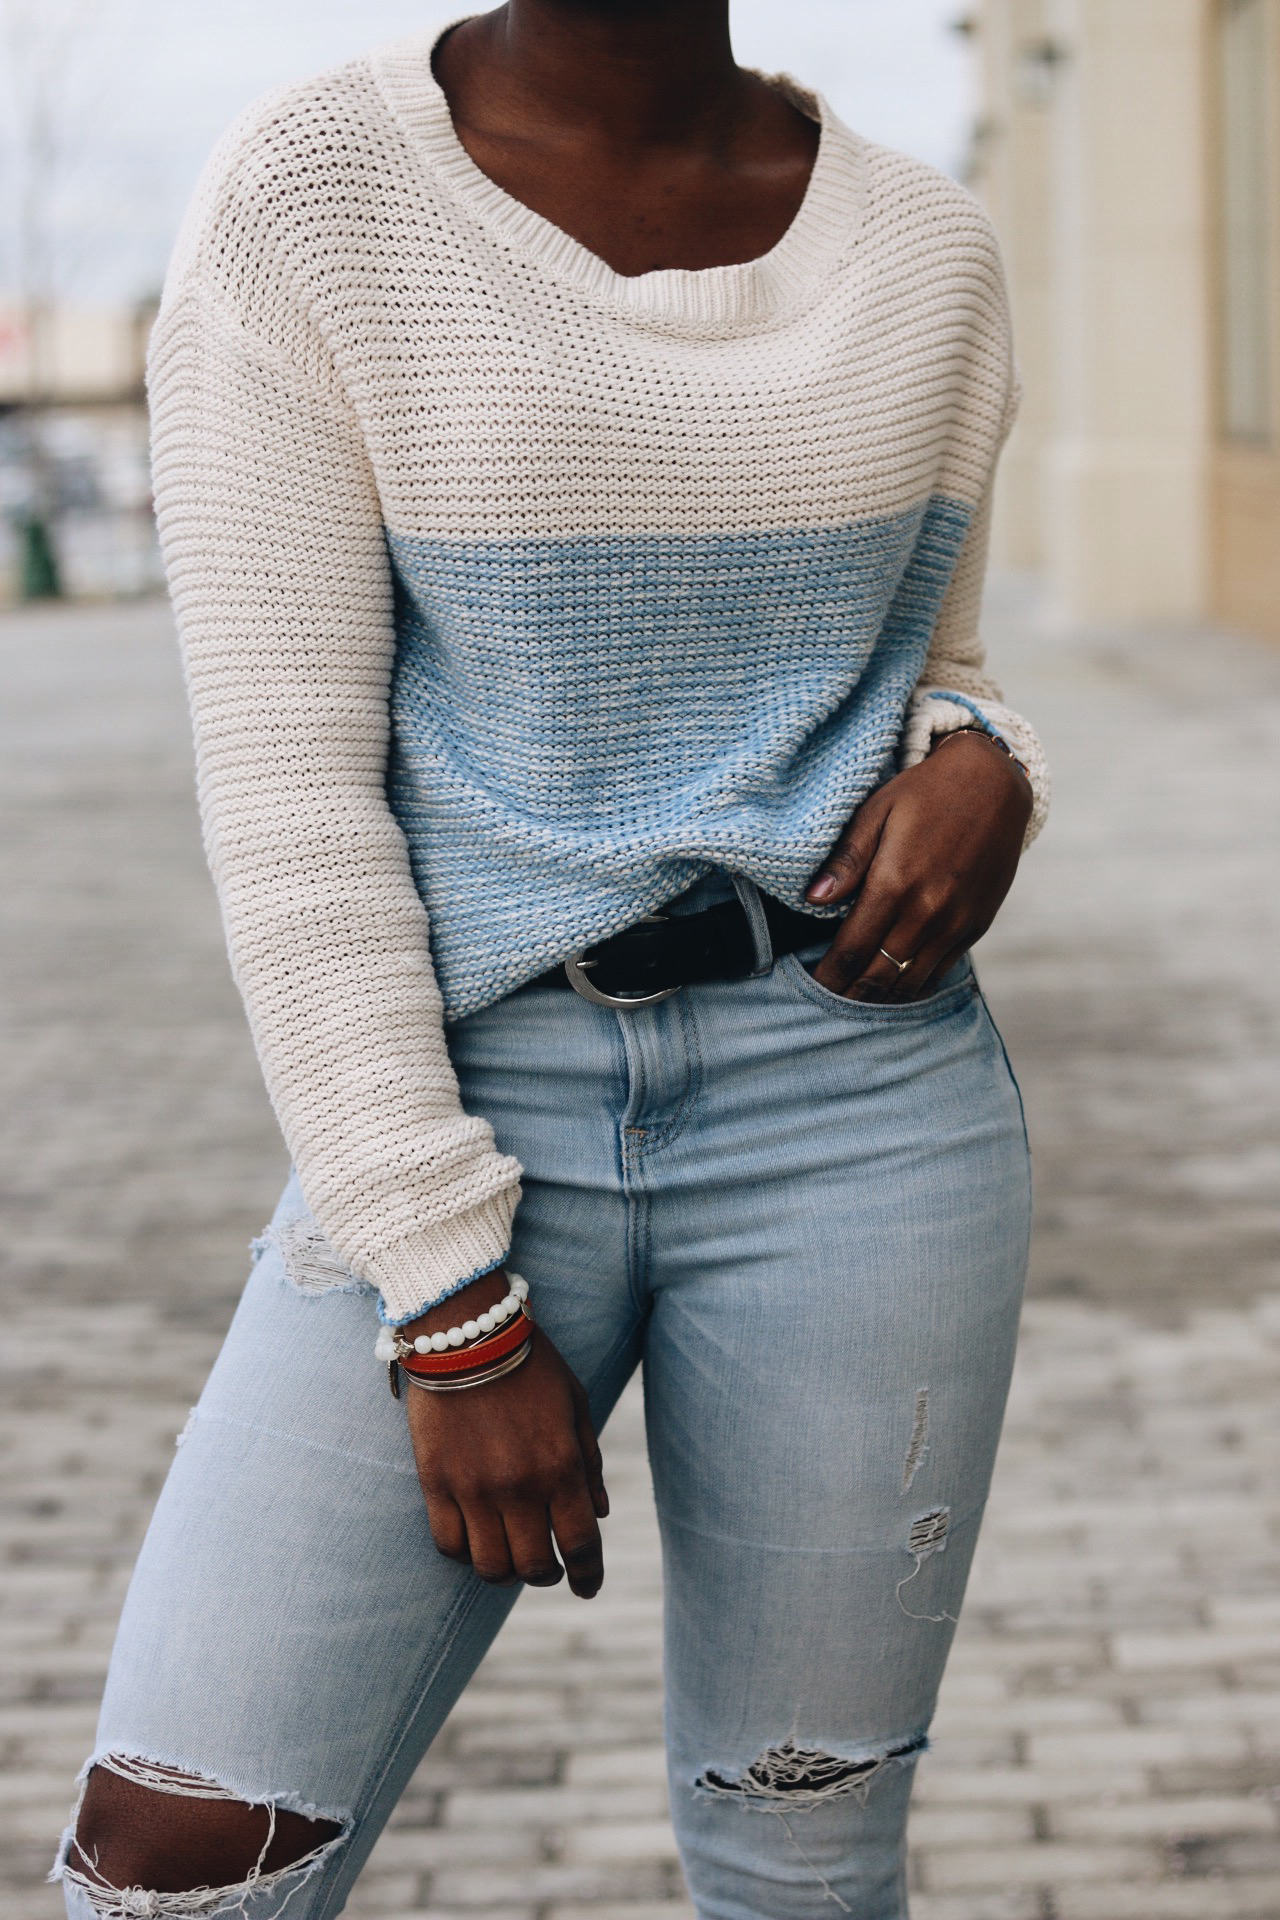 stylesynopsis-washed-out-jeans-light-sweater